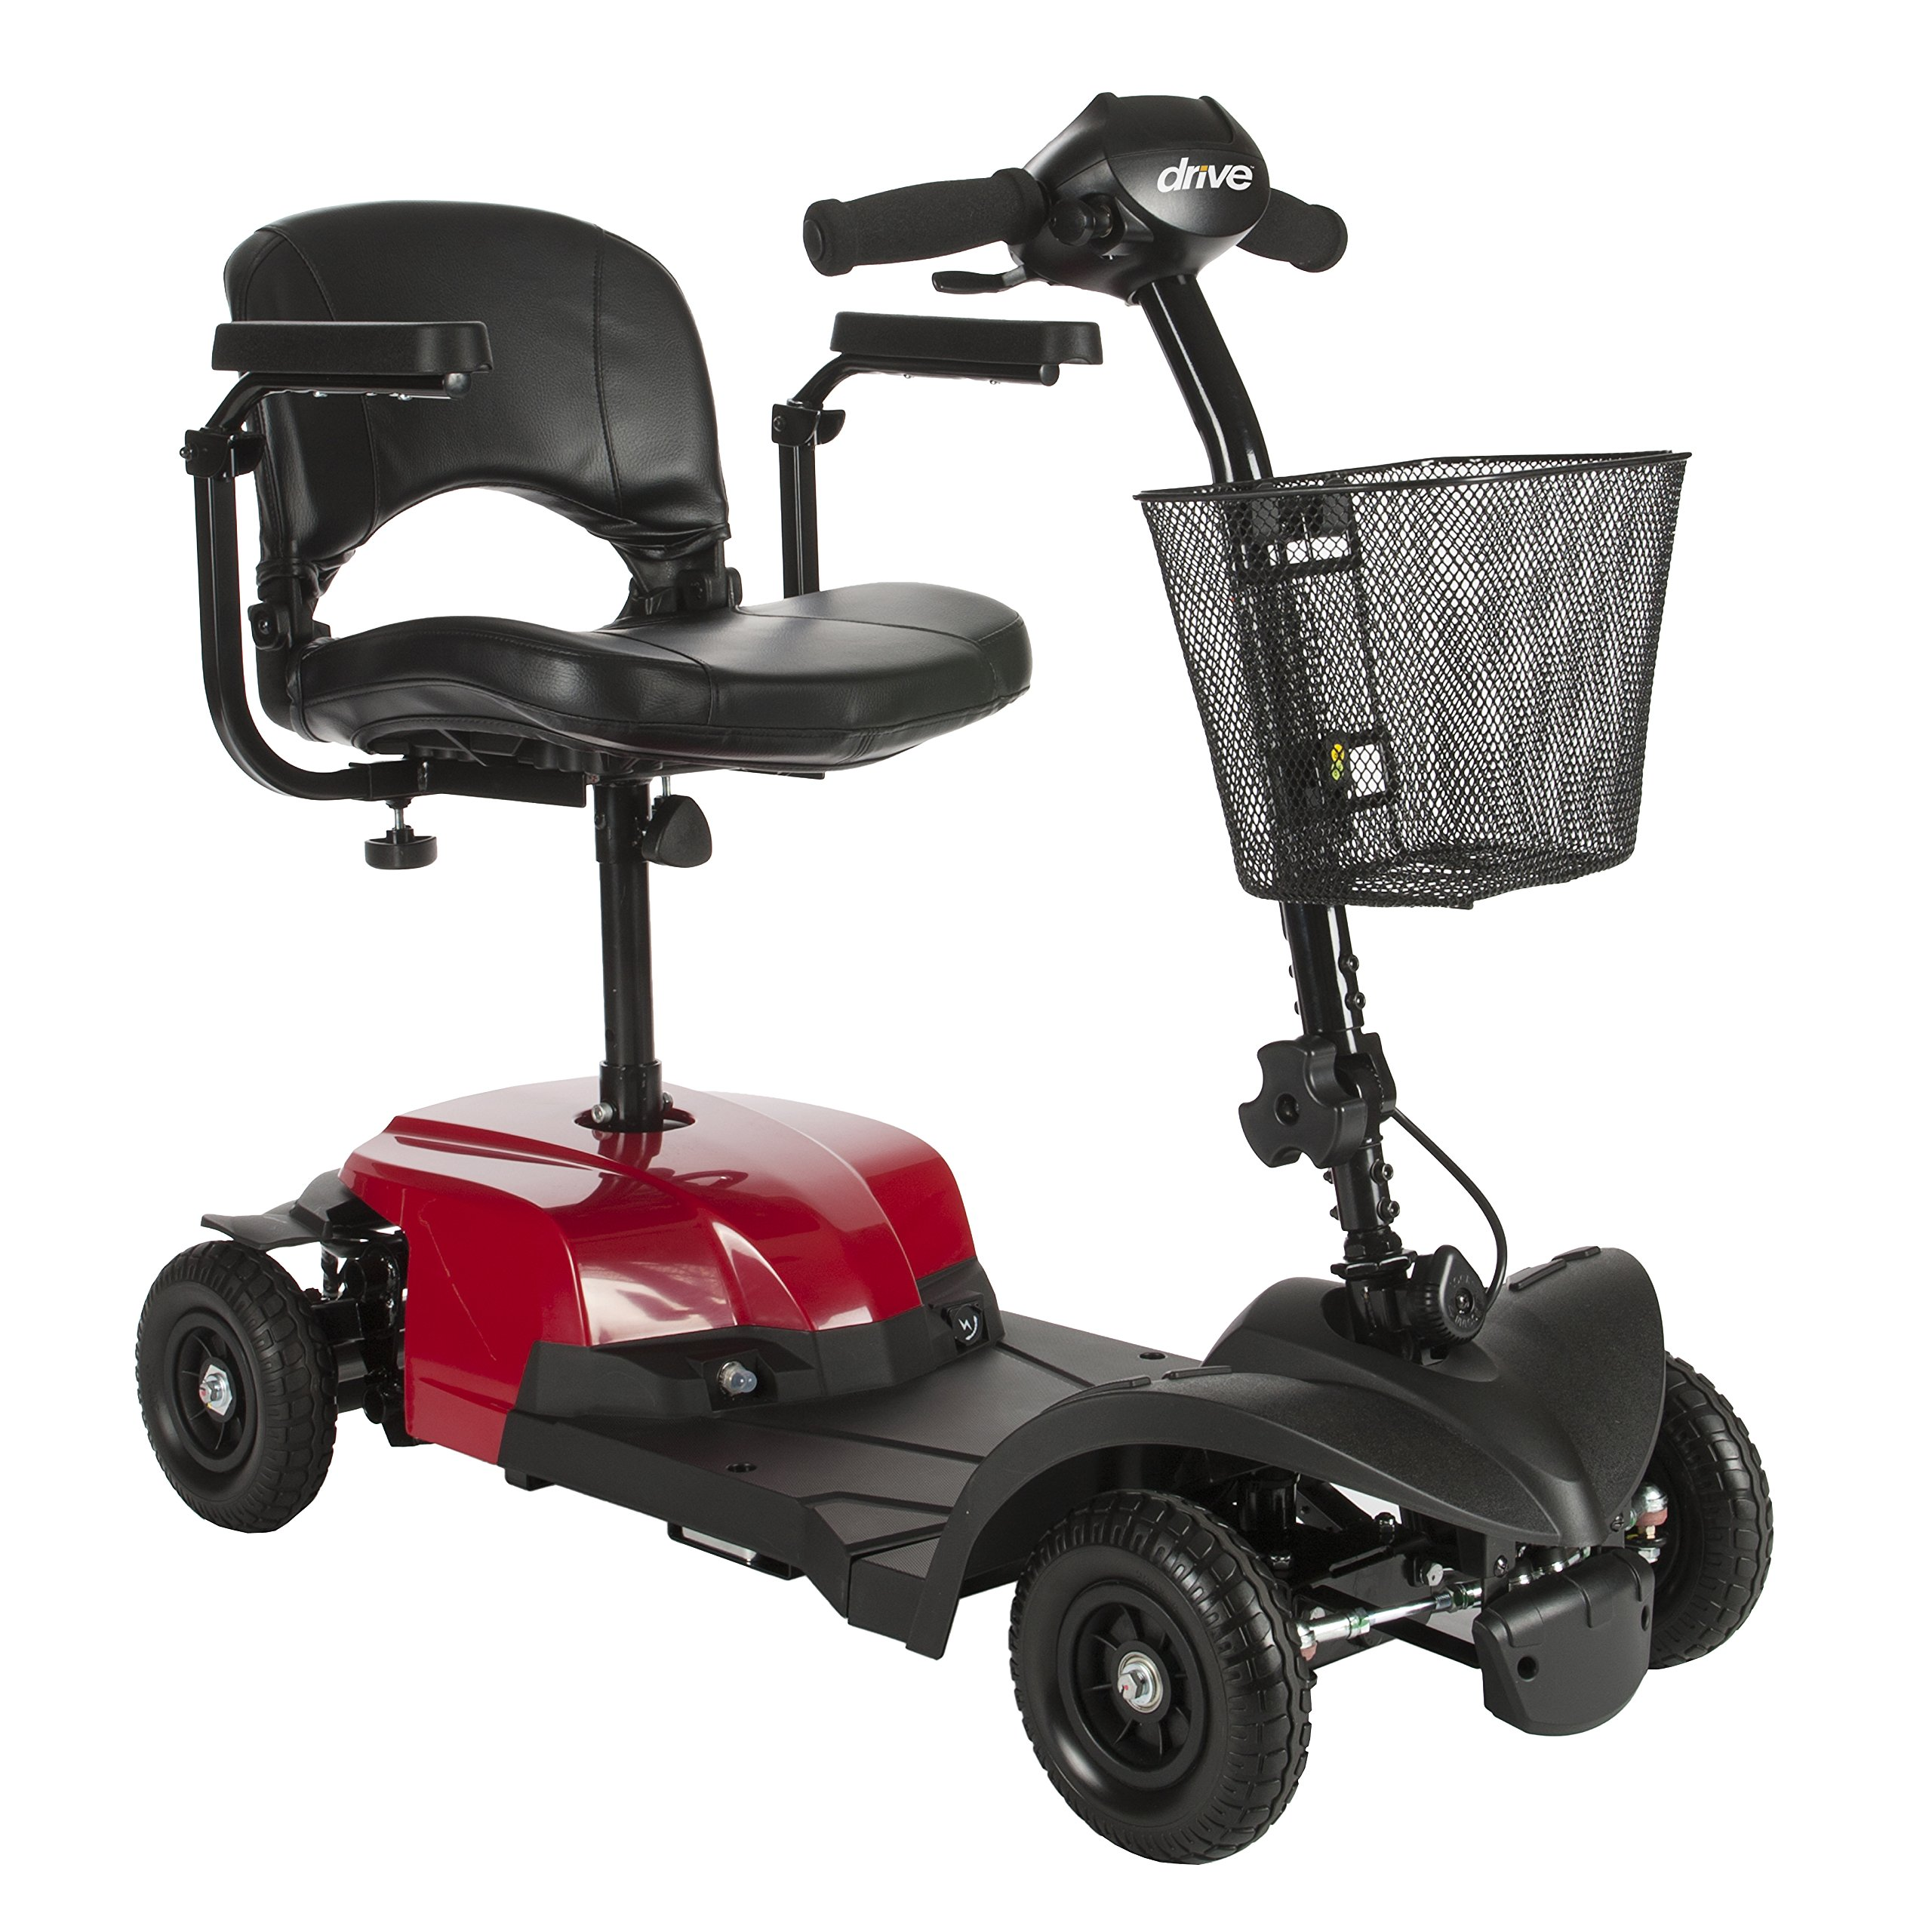 Drive Medical Bobcat X4 Compact Transportable Power Mobility Scooter, 4 Wheel, Red by Drive Medical